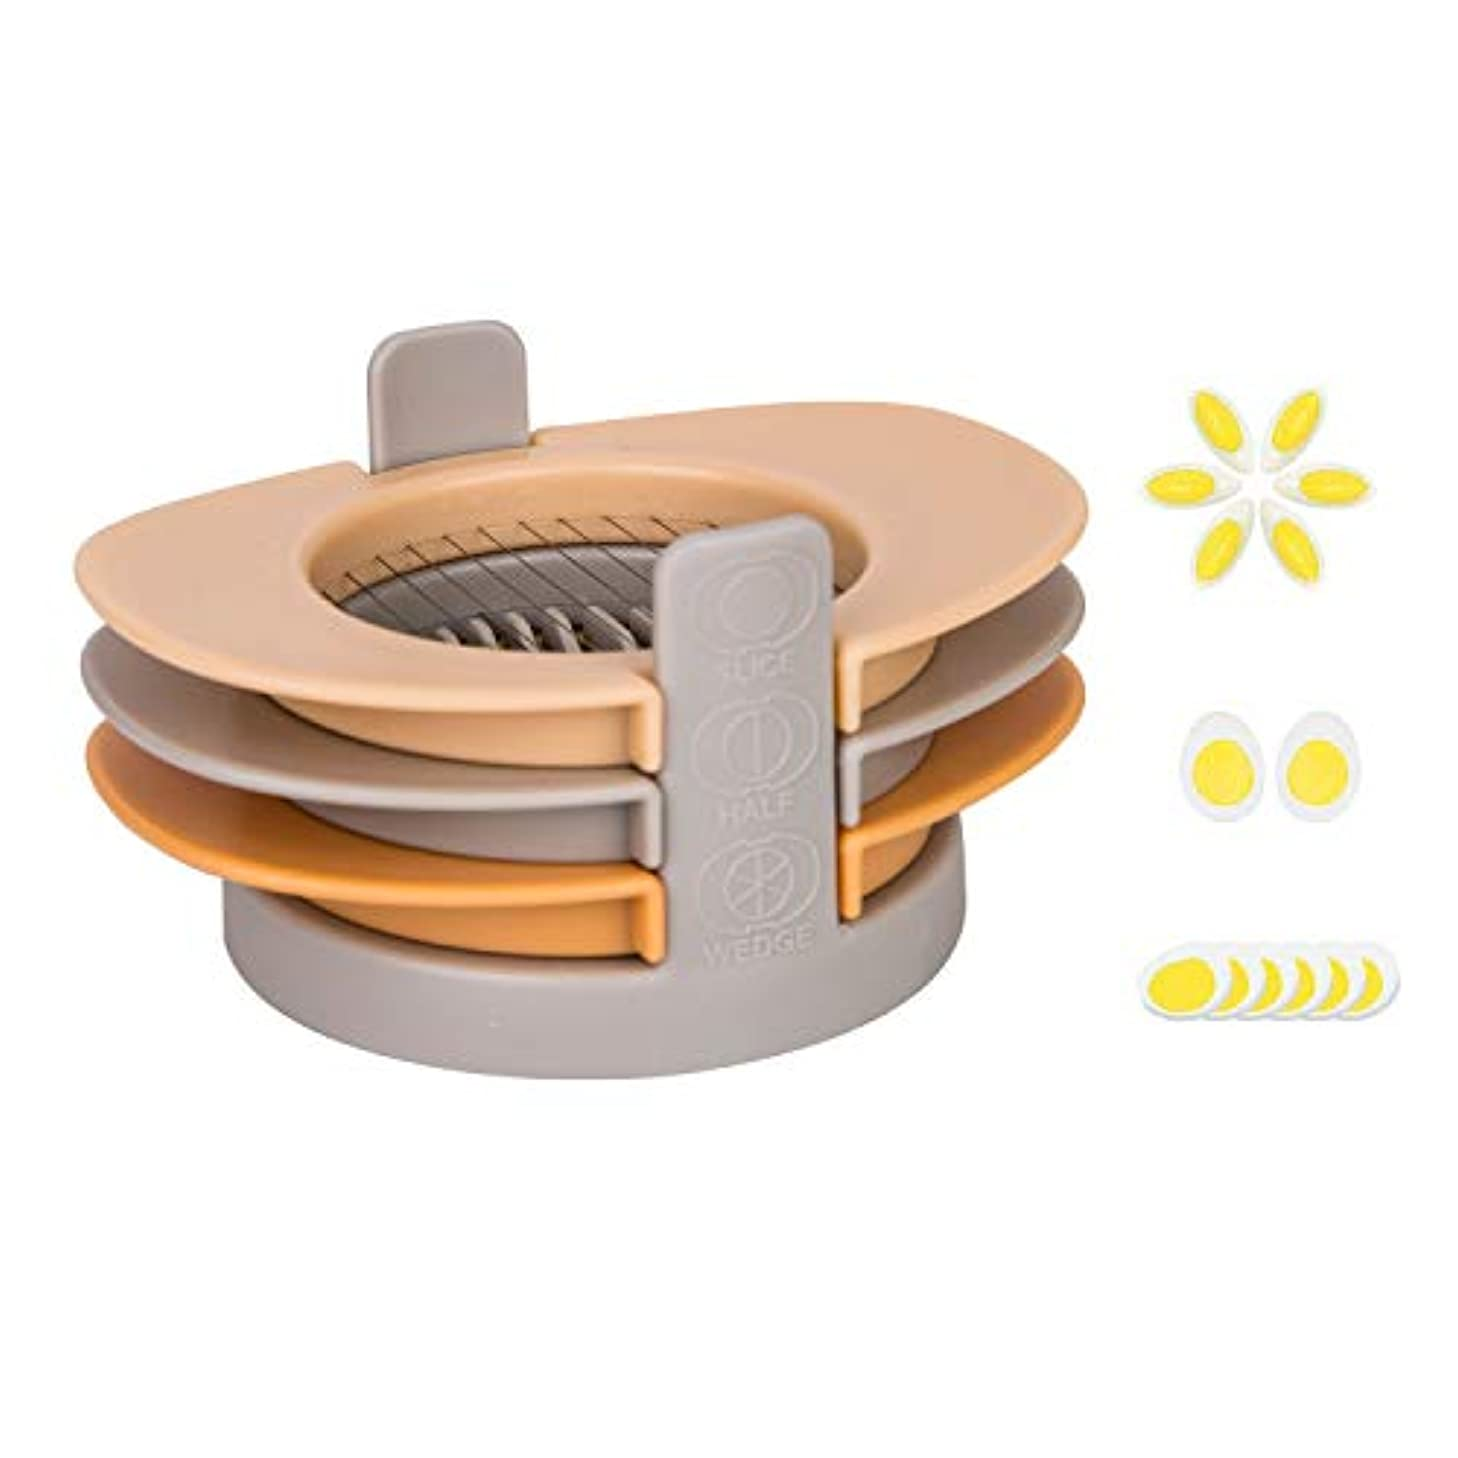 3-in-1 Egg Cutter with Stainless Steel Cutting Wire Egg Slicer for Fruit and Vegetable Kitchen Garnish Tool